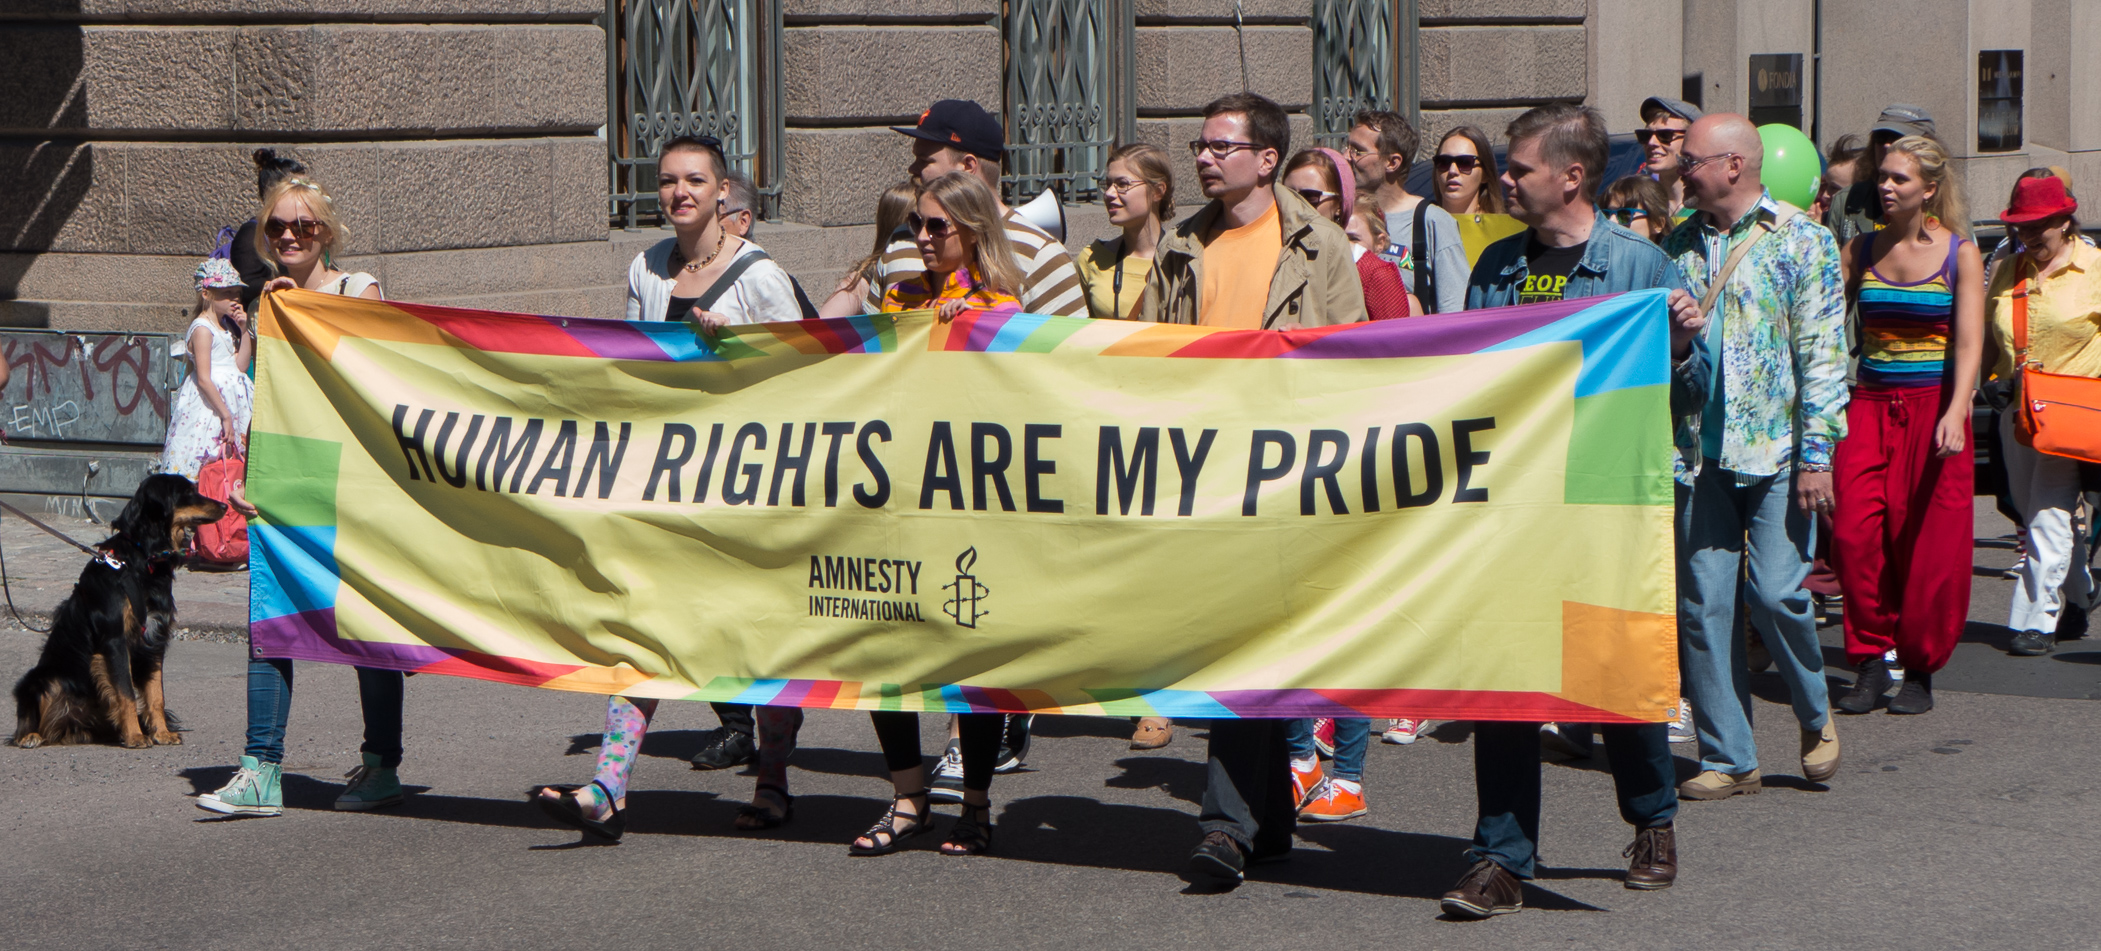 Amnesty international: human rights are my pride